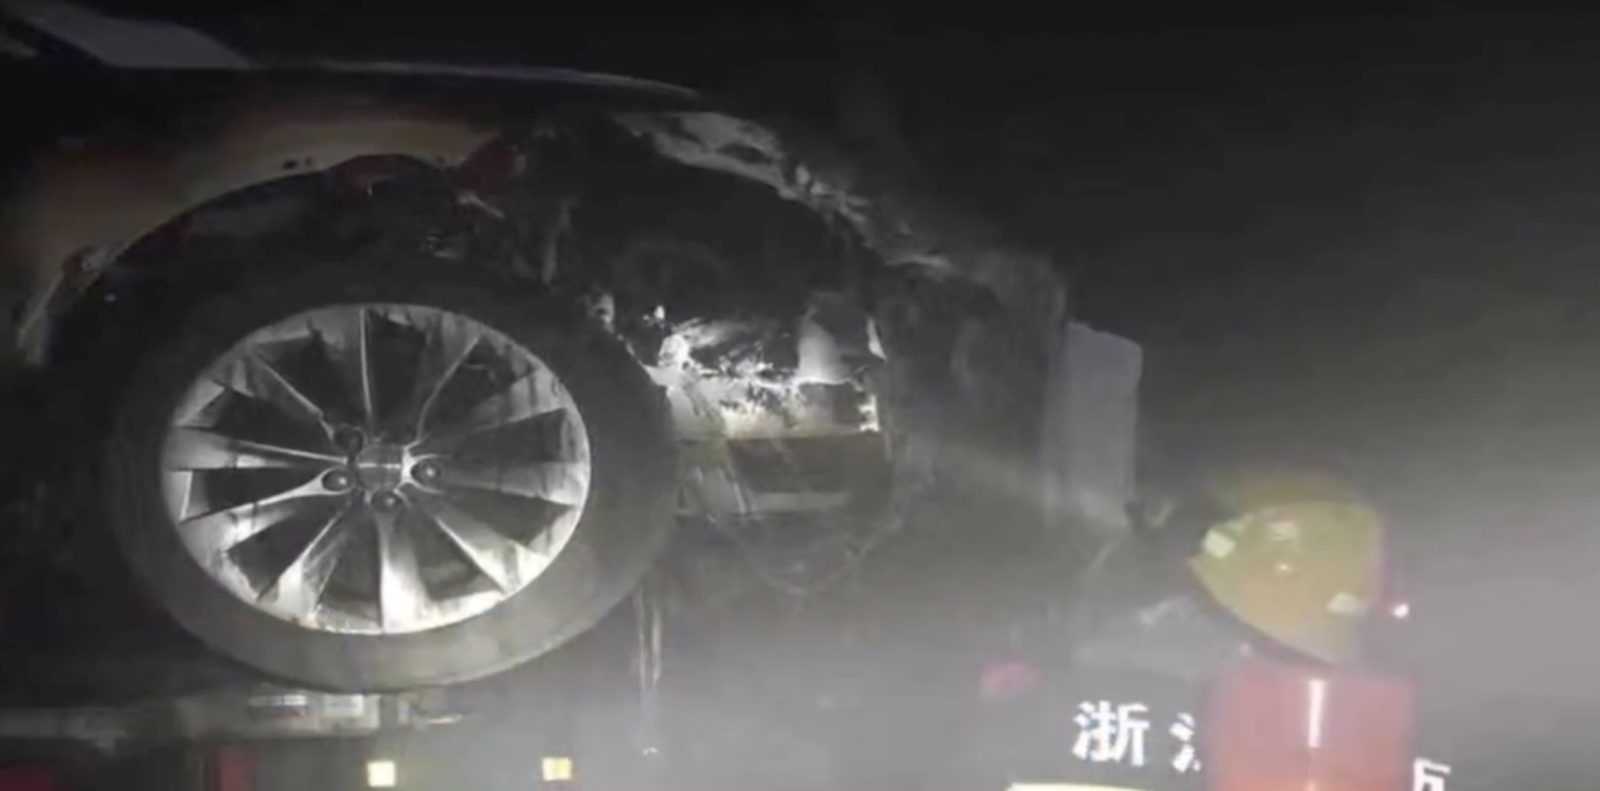 Tesla caught on fire while in Hangzhou service center, Tesla says battery had water damage